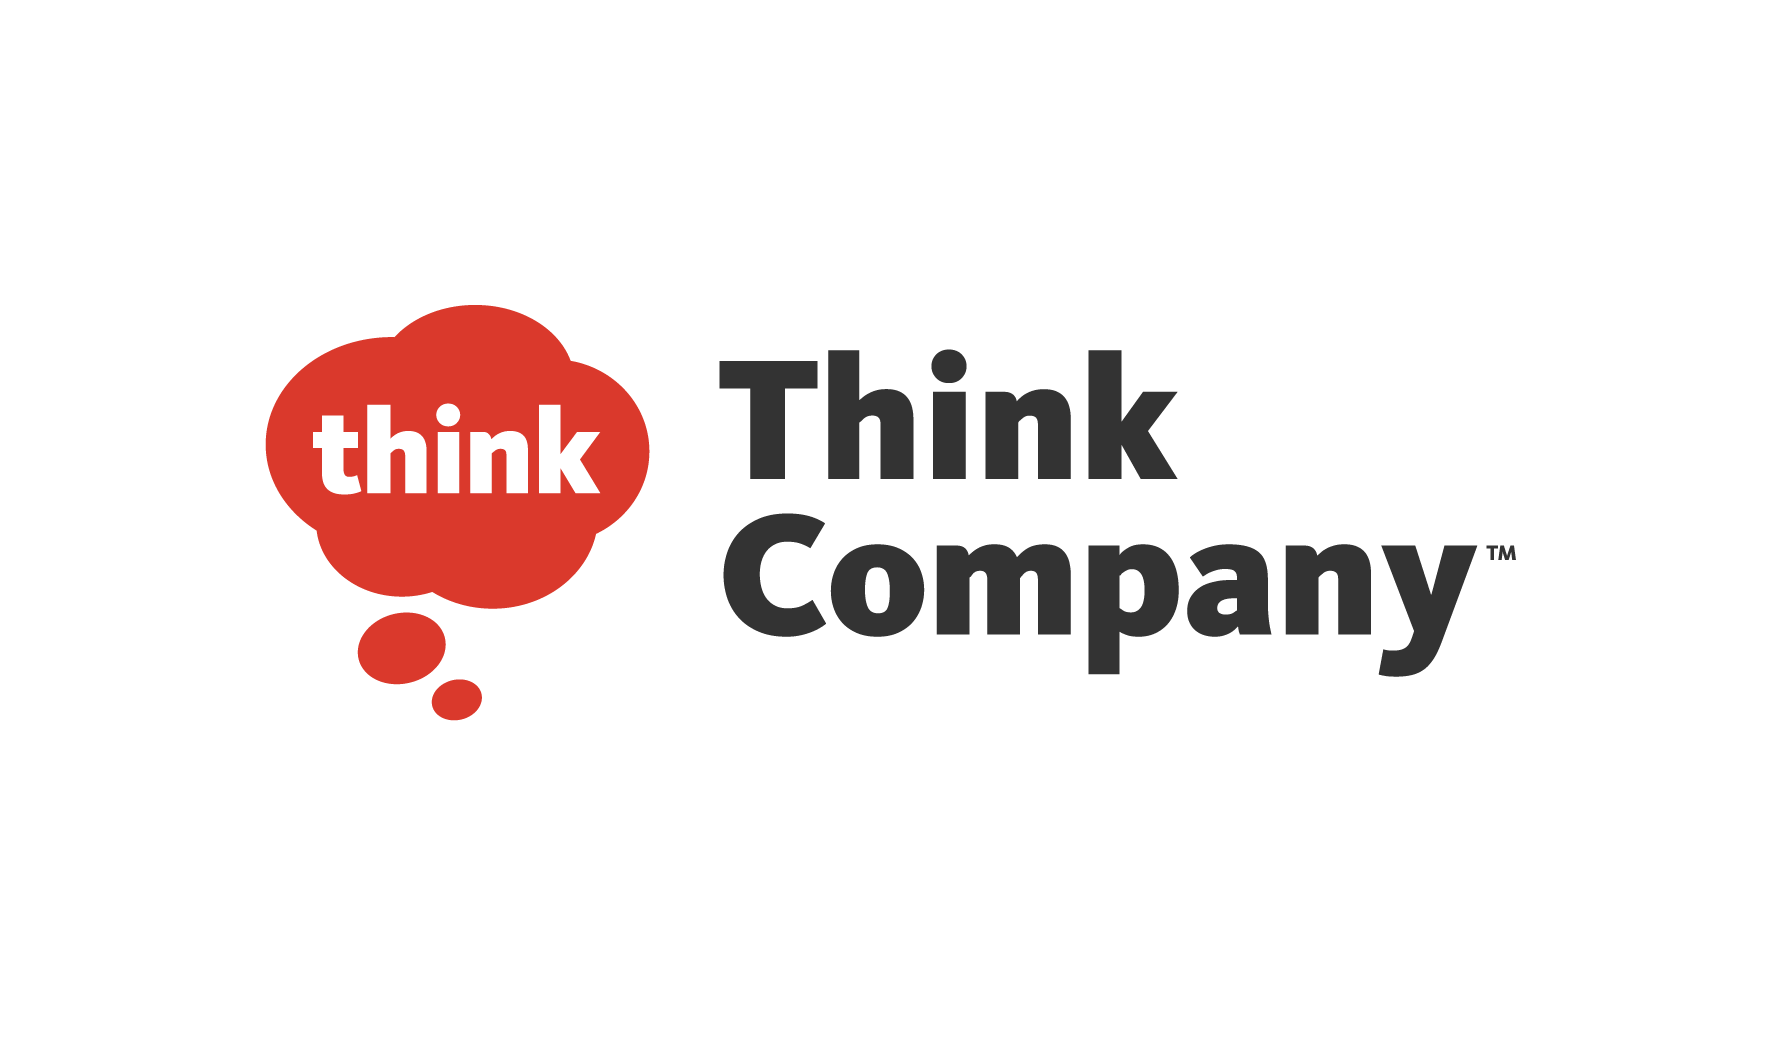 thinkcompany